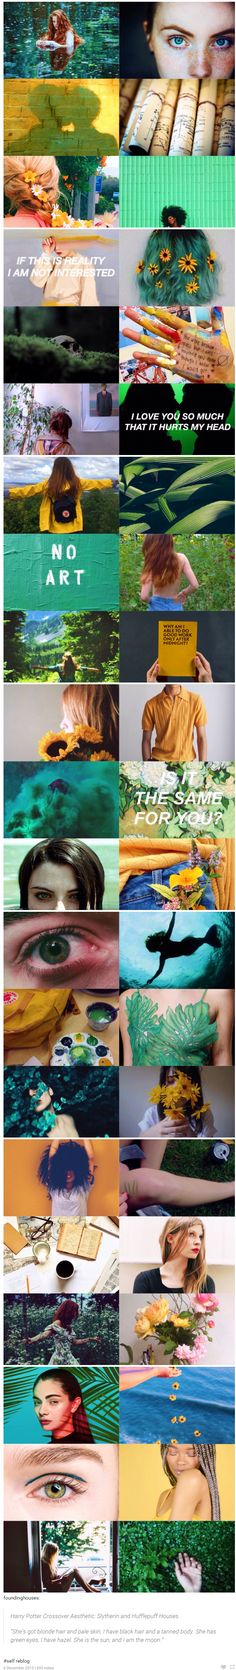 """foundinghouses:  Harry Potter Crossover Aesthetic: Slytherin and Hufflepuff Houses  """"She's got blonde hair and pale skin, I have black hair and a tanned body. She has green eyes, I have hazel. She is the sun, and I am the moon."""""""